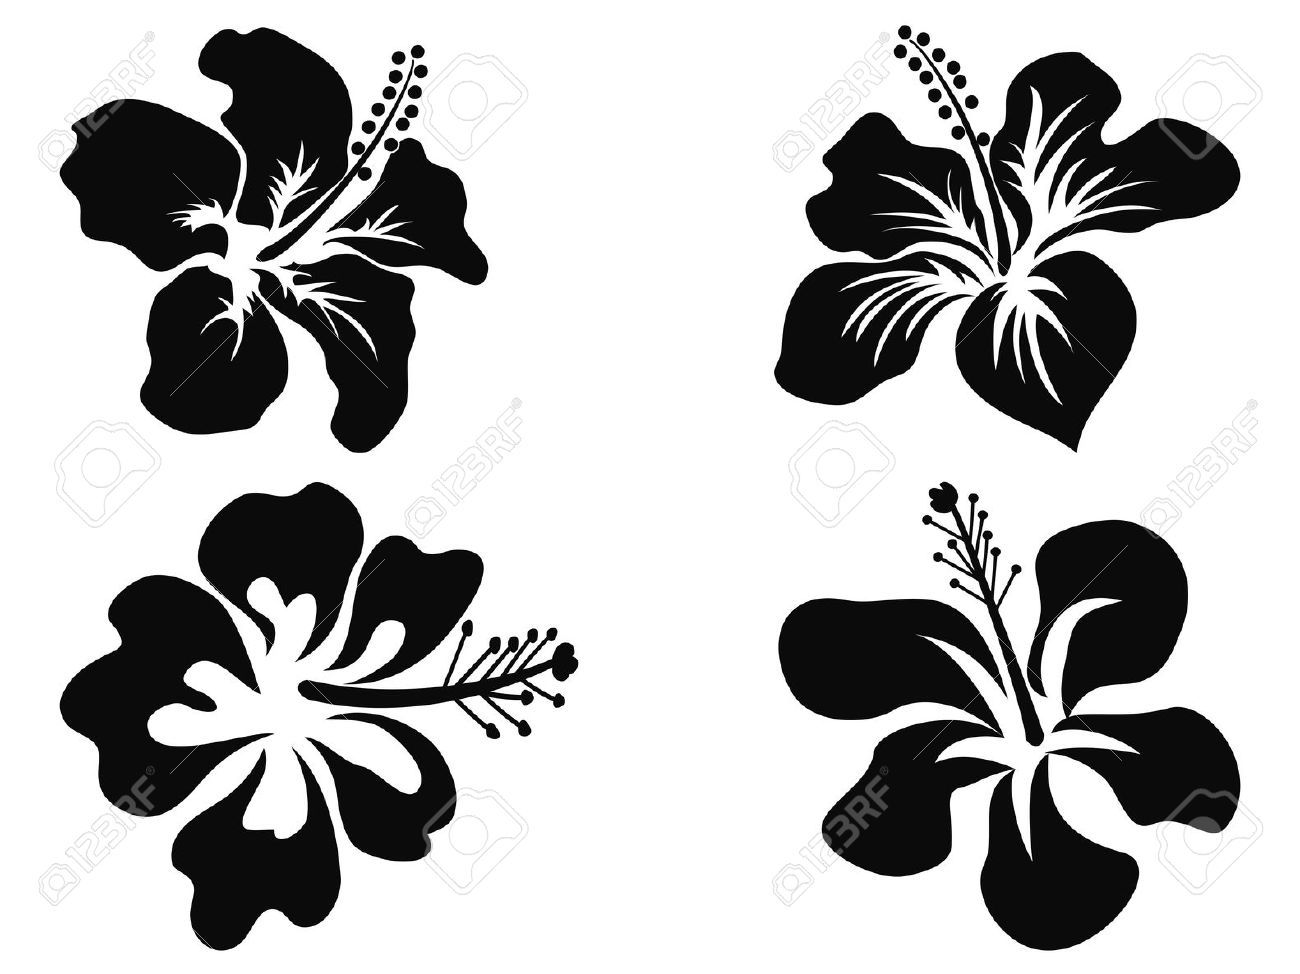 Hawaiian flower hibiscus stencil floral stock photos images hawaiian flower hibiscus stencil floral stock photos images royalty free stencil floral izmirmasajfo